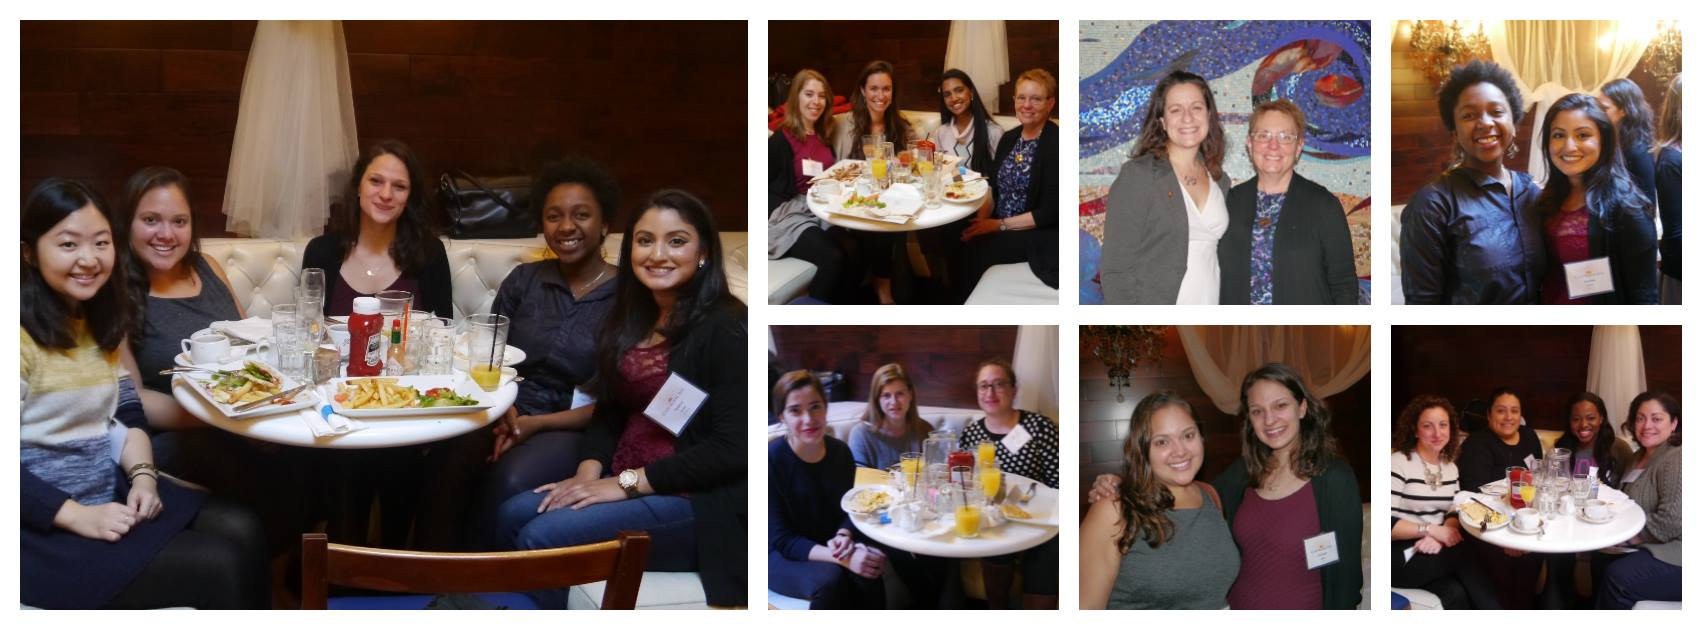 Join other CRS women to network, know what others are up to and celebrate.View the event on  Facebook here.